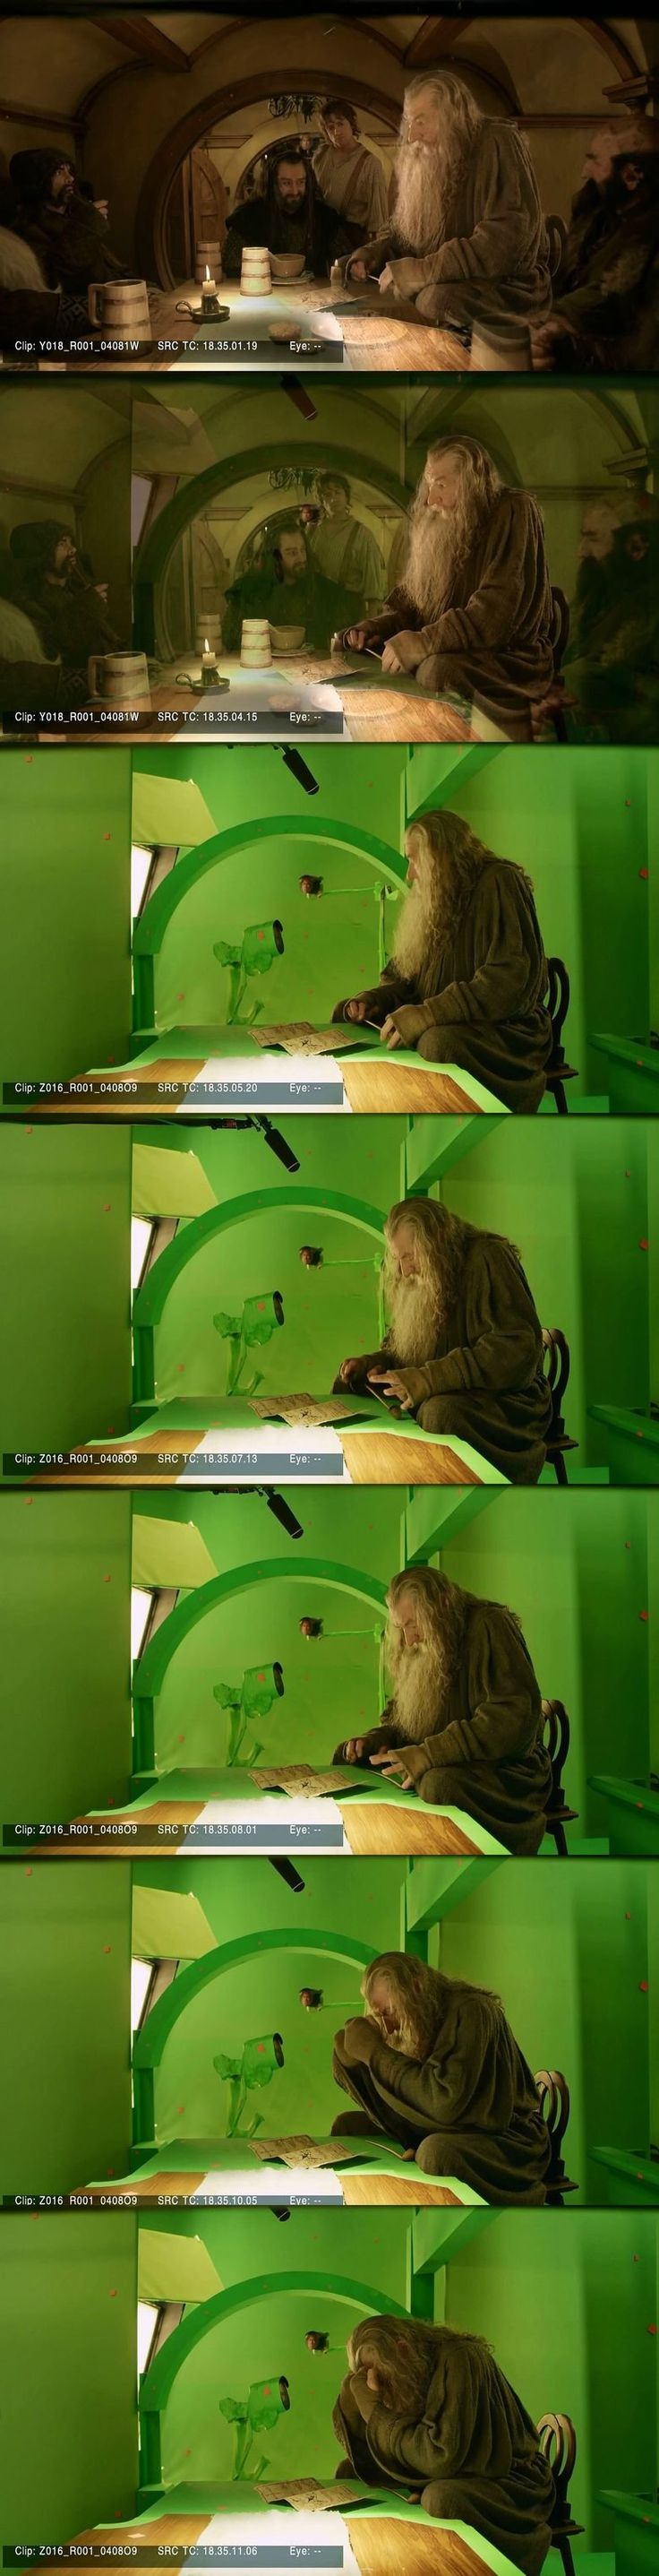 """Sir Ian McKellen broke down and cried whilst filming 'The Hobbit' because he had to film with a just a green screen instead of with other actors, he said 'this is not why I became an actor'."" :,( That's soooo sad >.<"